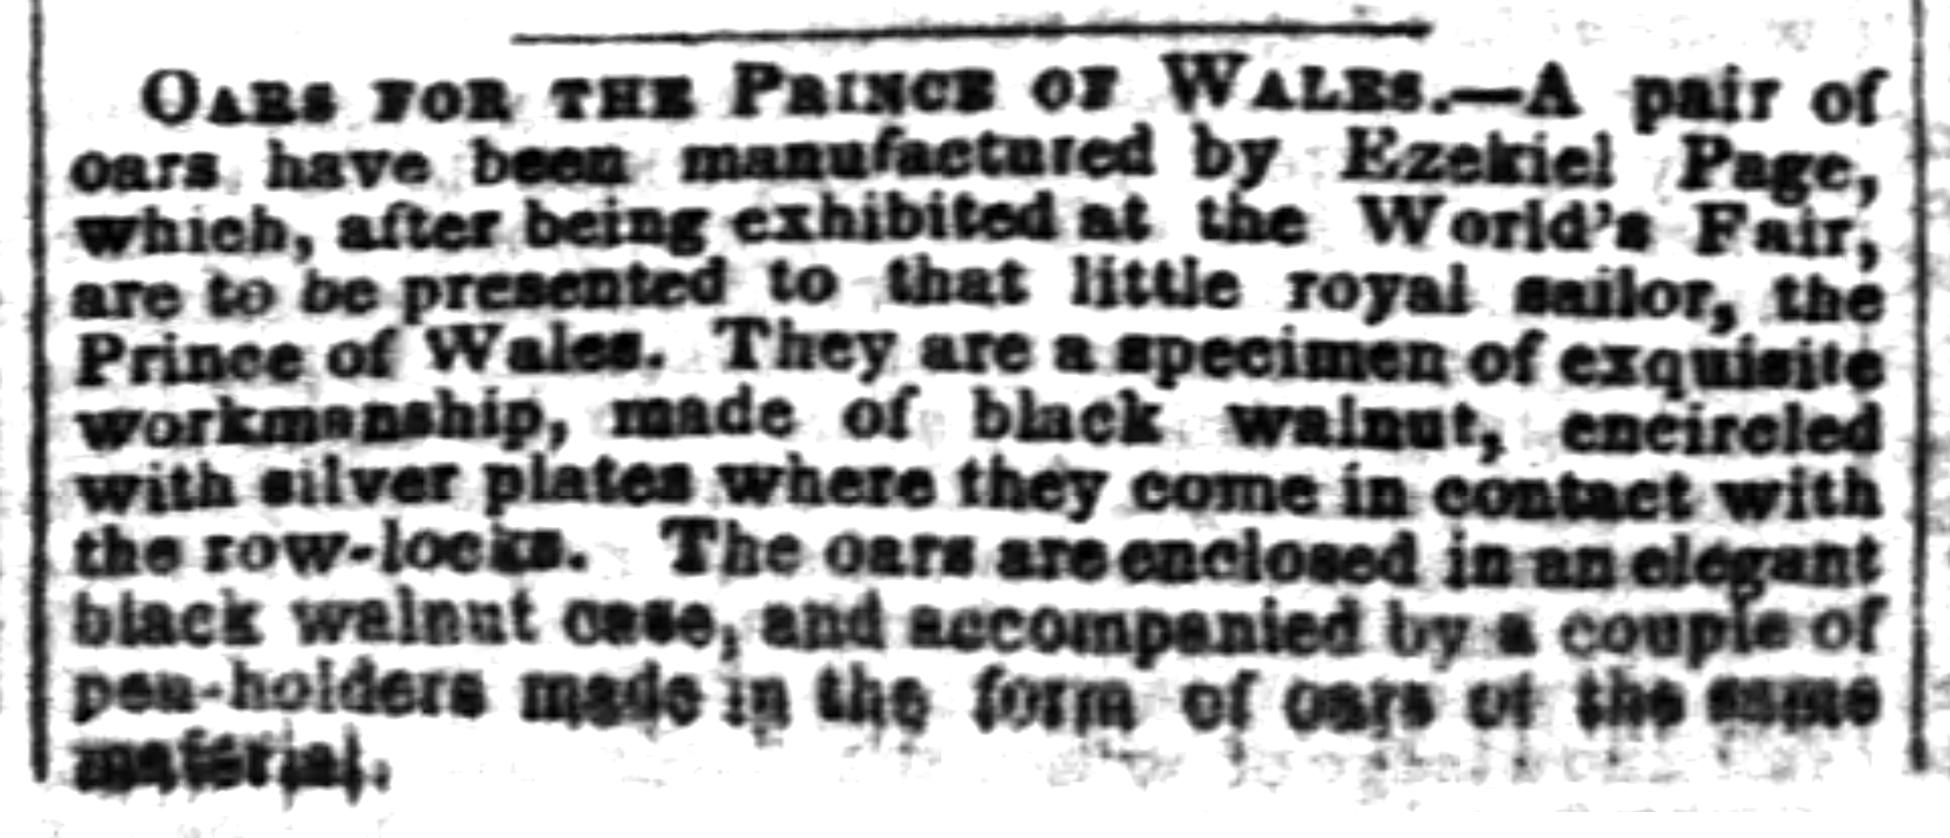 1851-02-01 The Baltimore Sun (Baltimore MD) Sat Feb 1, 1851, p1, Oars for the Prince of Wales